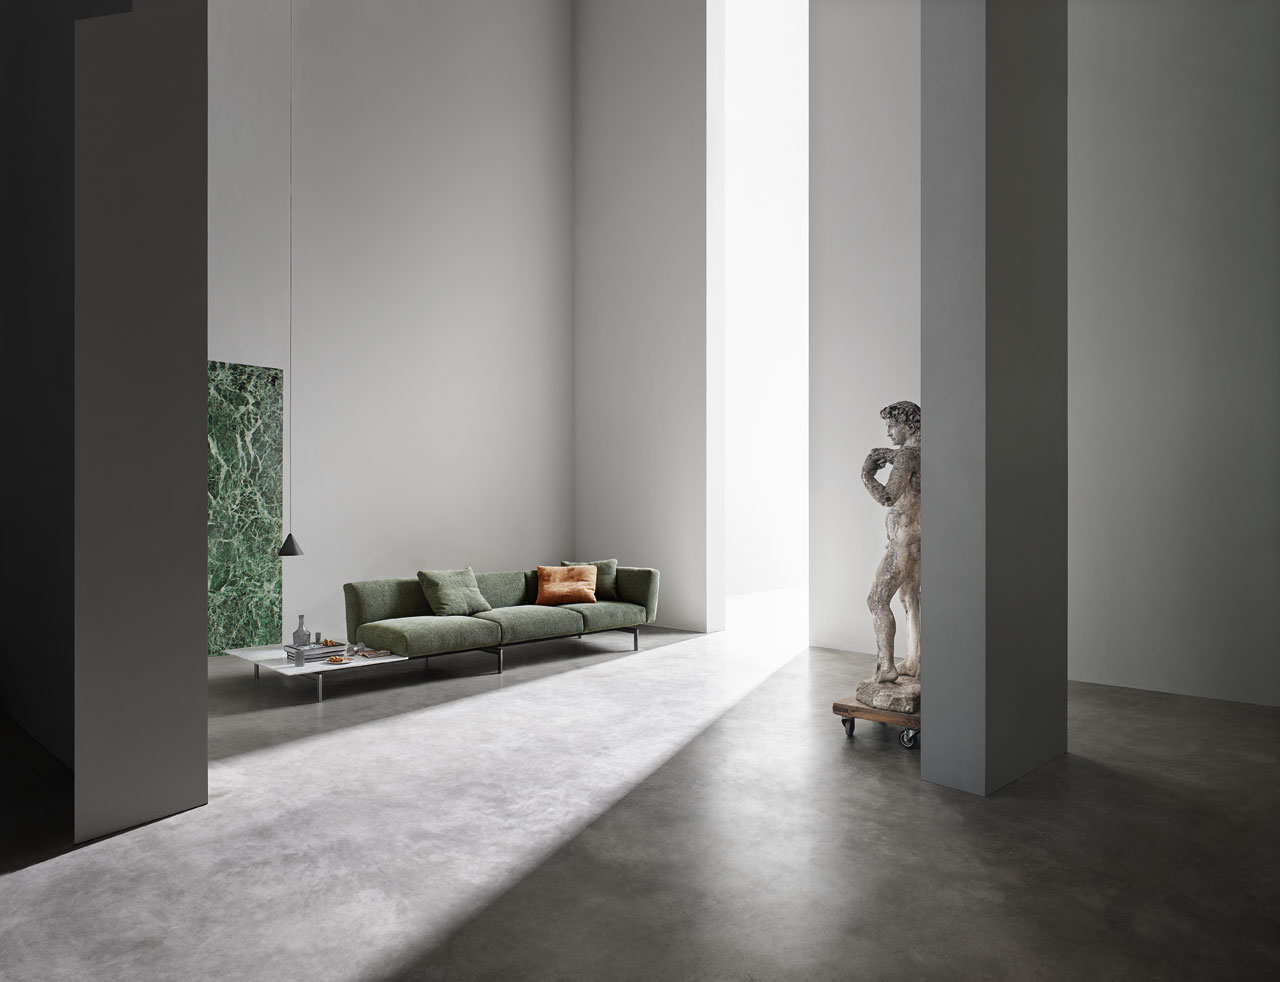 Avio Sofa System Collection by Piero Lissoni for Knoll. Photo by Federico Cedrone.